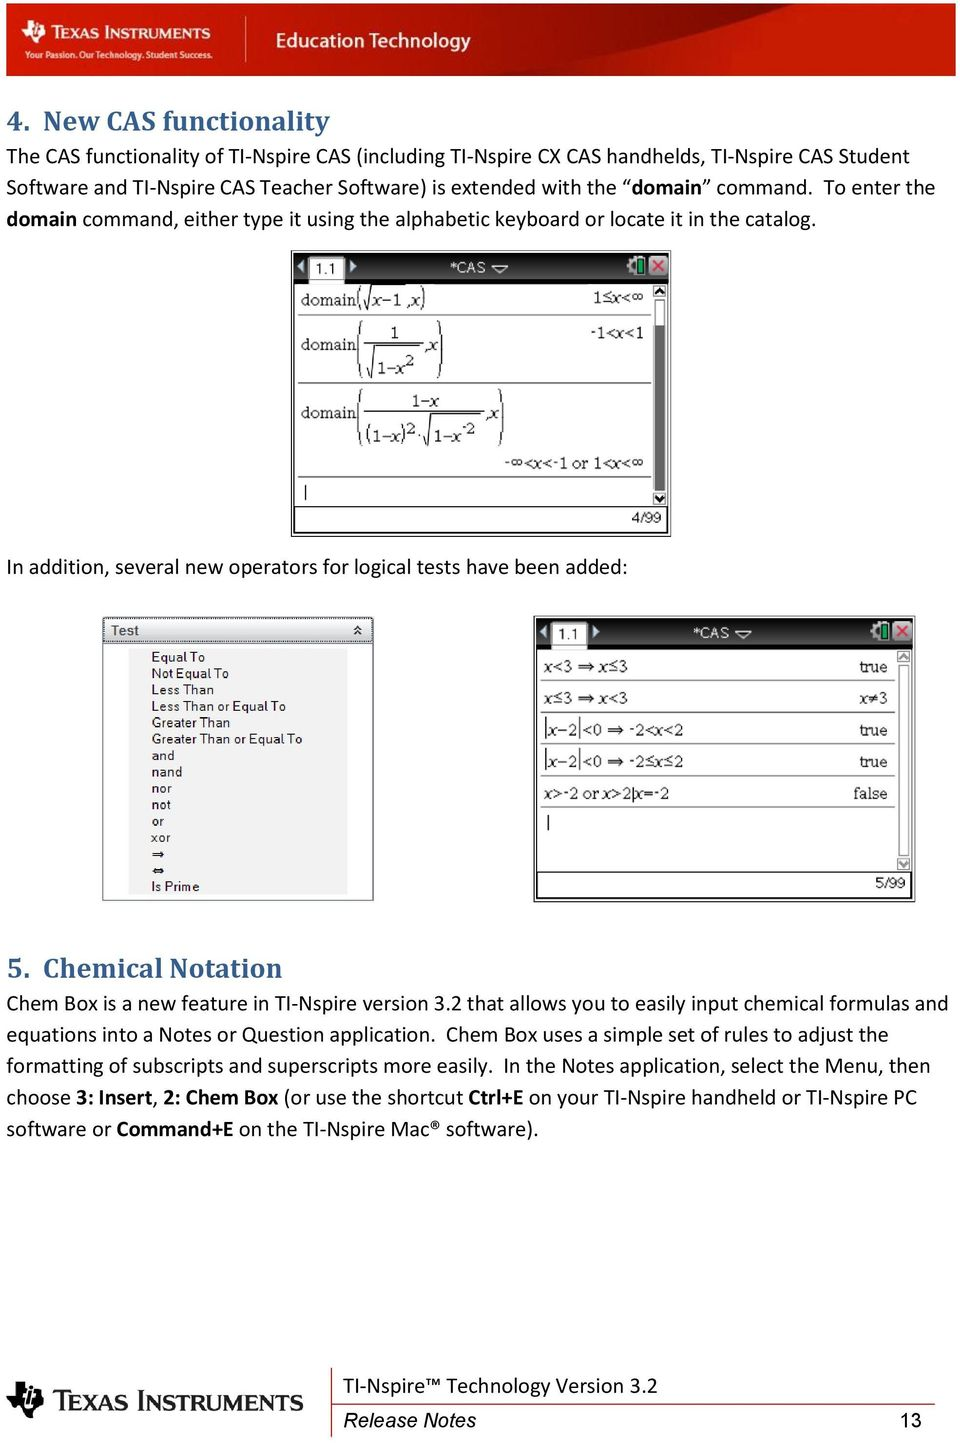 Chemical Notation Chem Box is a new feature in TI-Nspire version 3.2 that allows you to easily input chemical formulas and equations into a Notes or Question application.